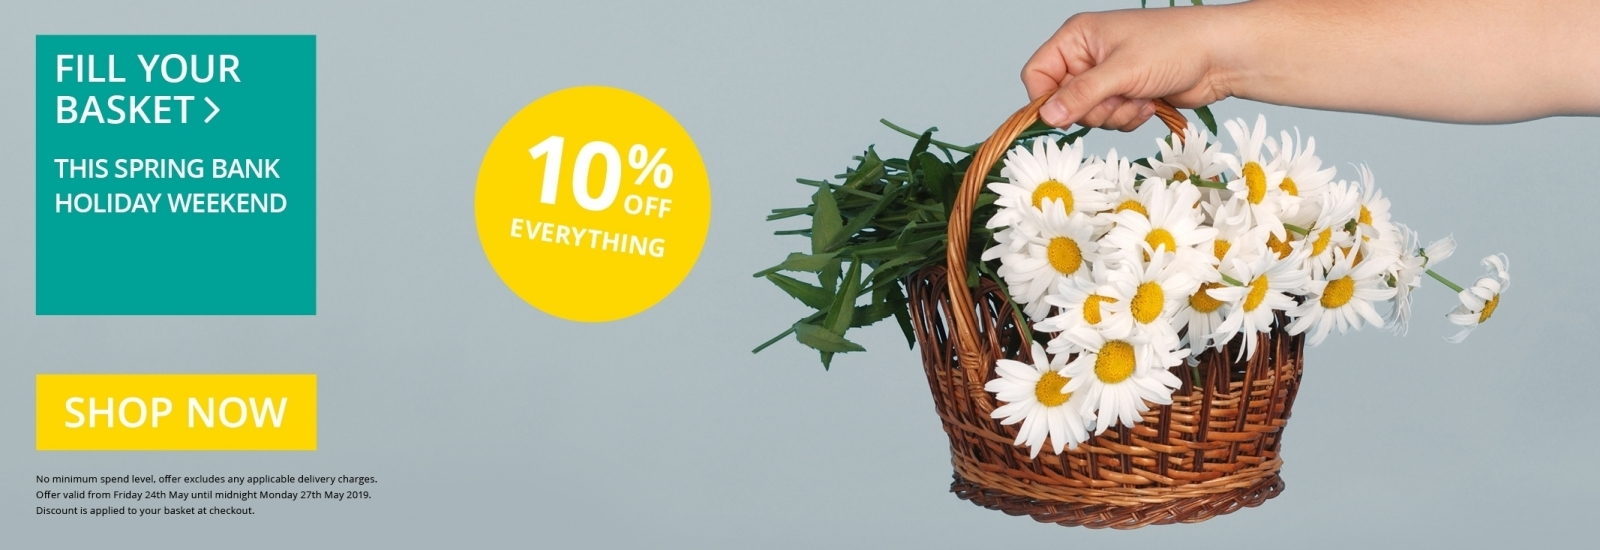 10% Off Everything - Spring Bank Holiday